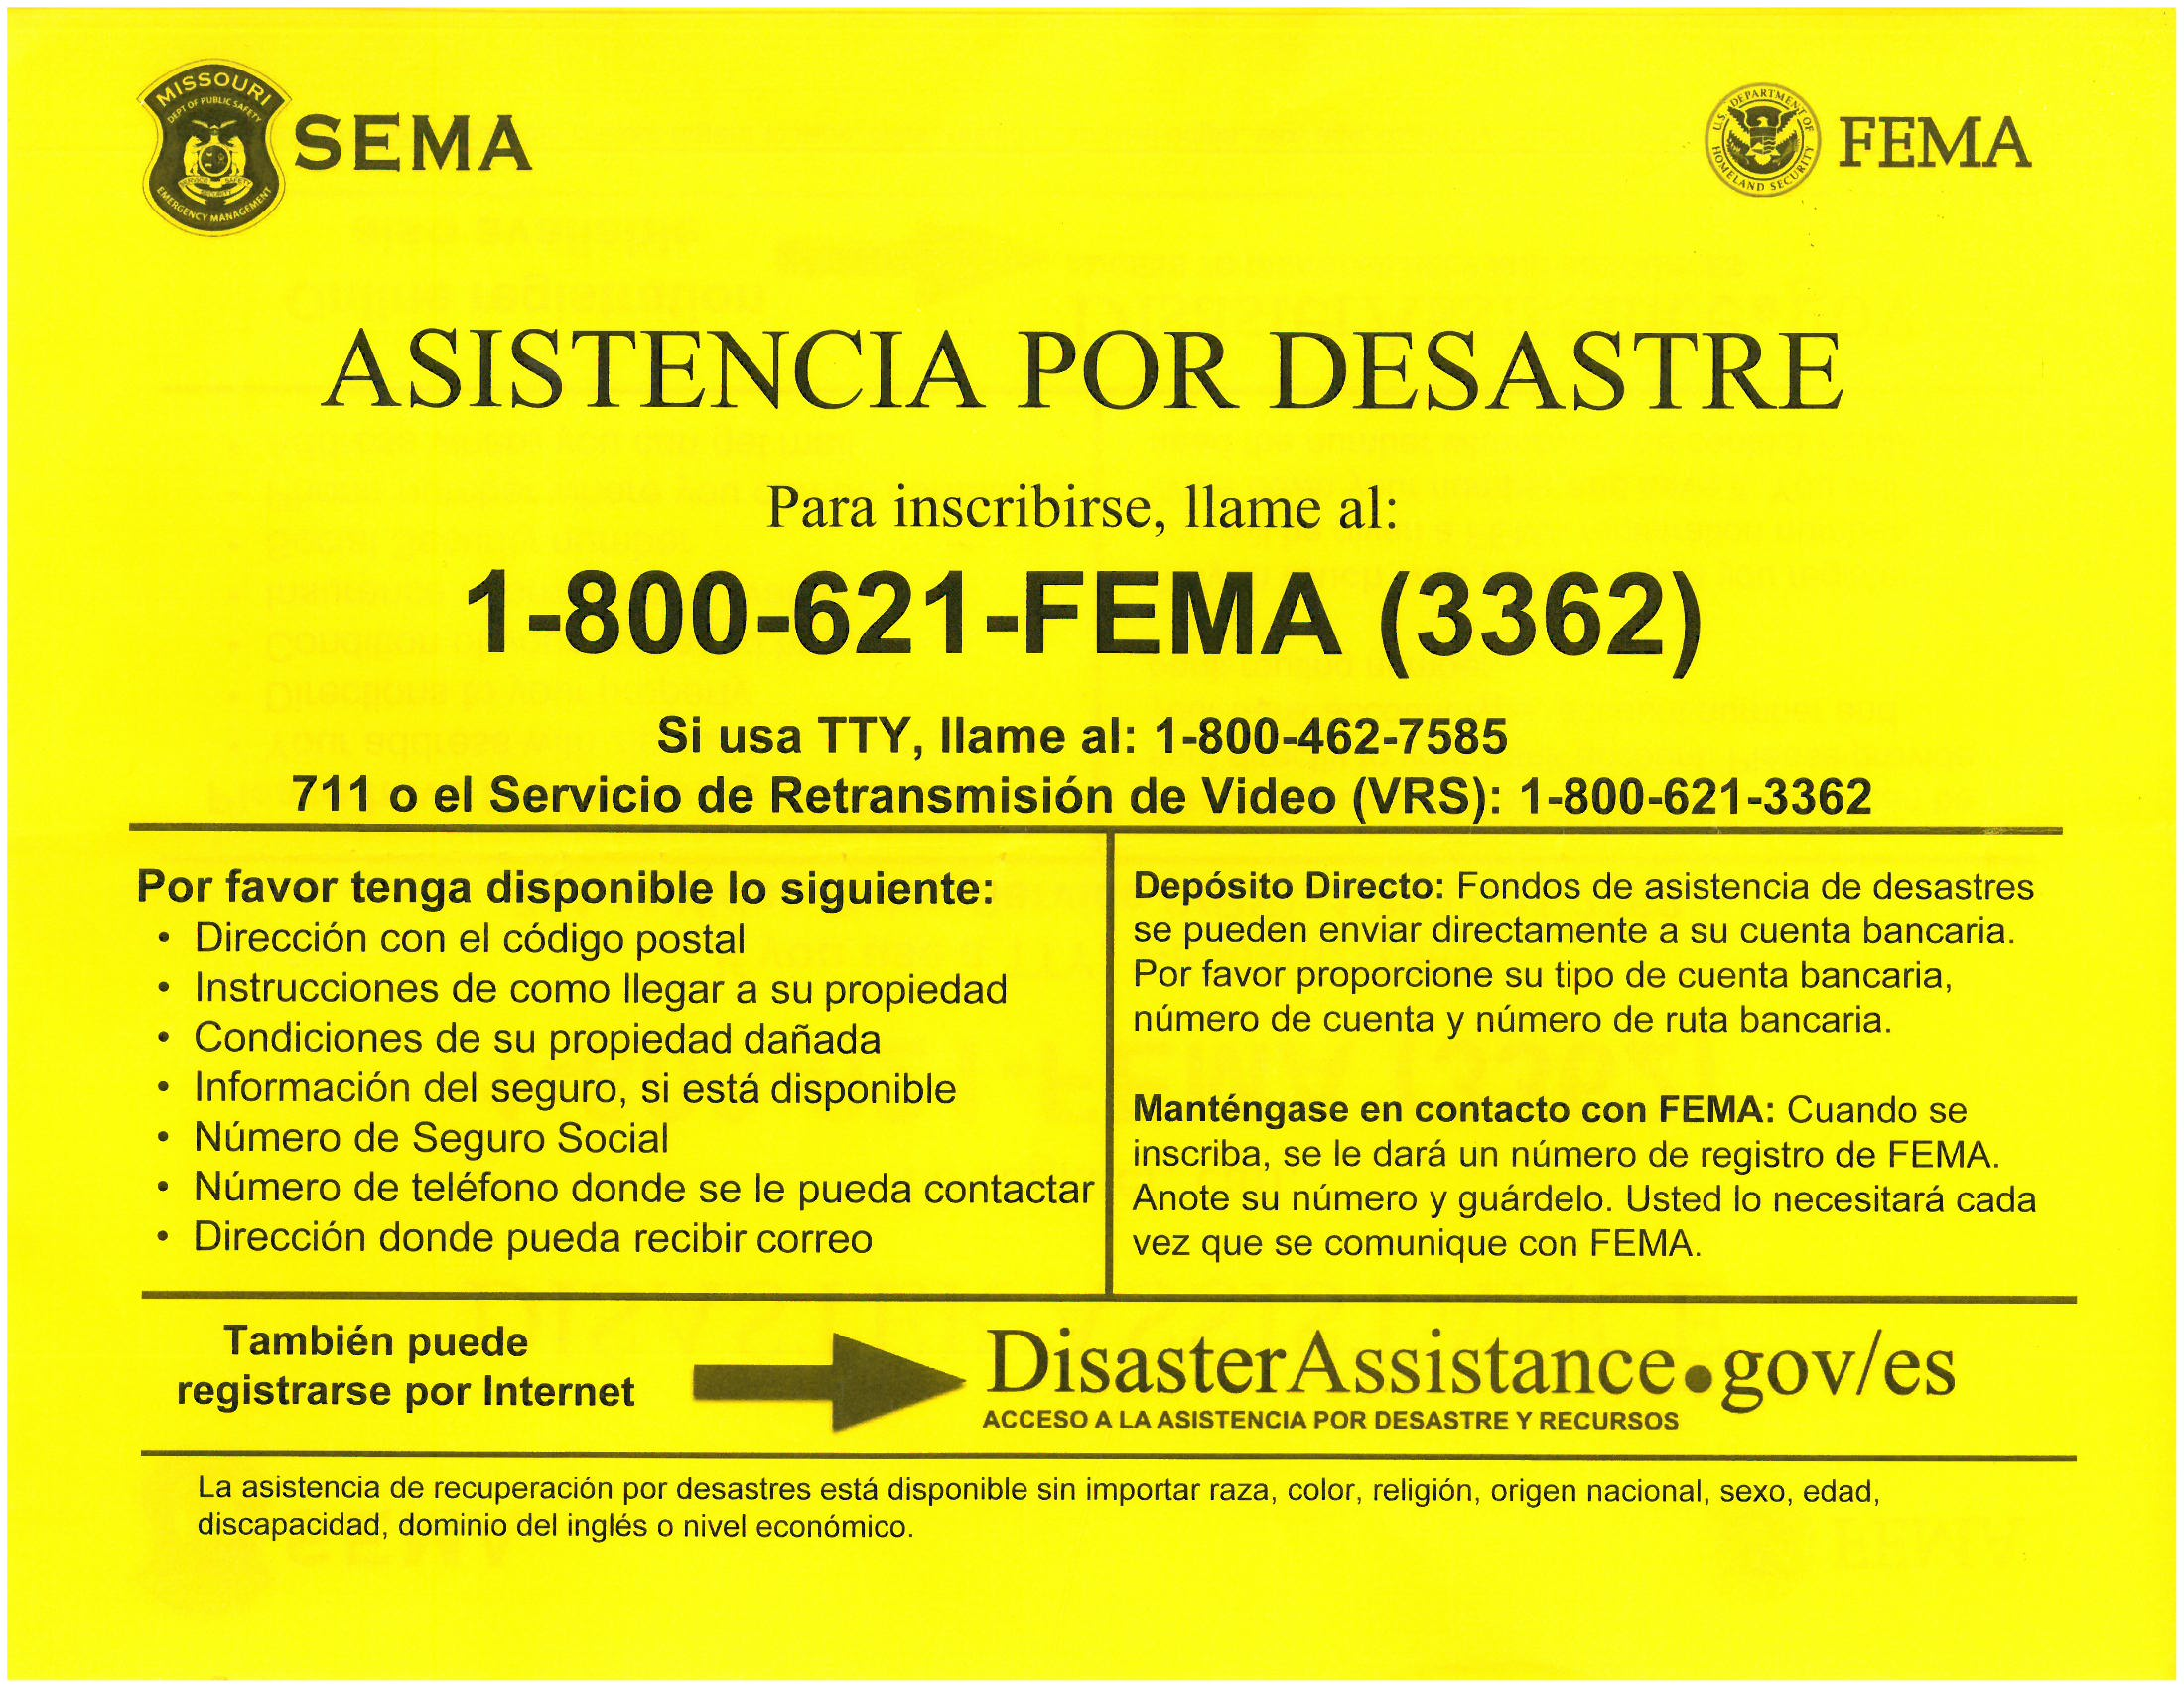 FEMA Disaster Assistance info_Page_2.jpg